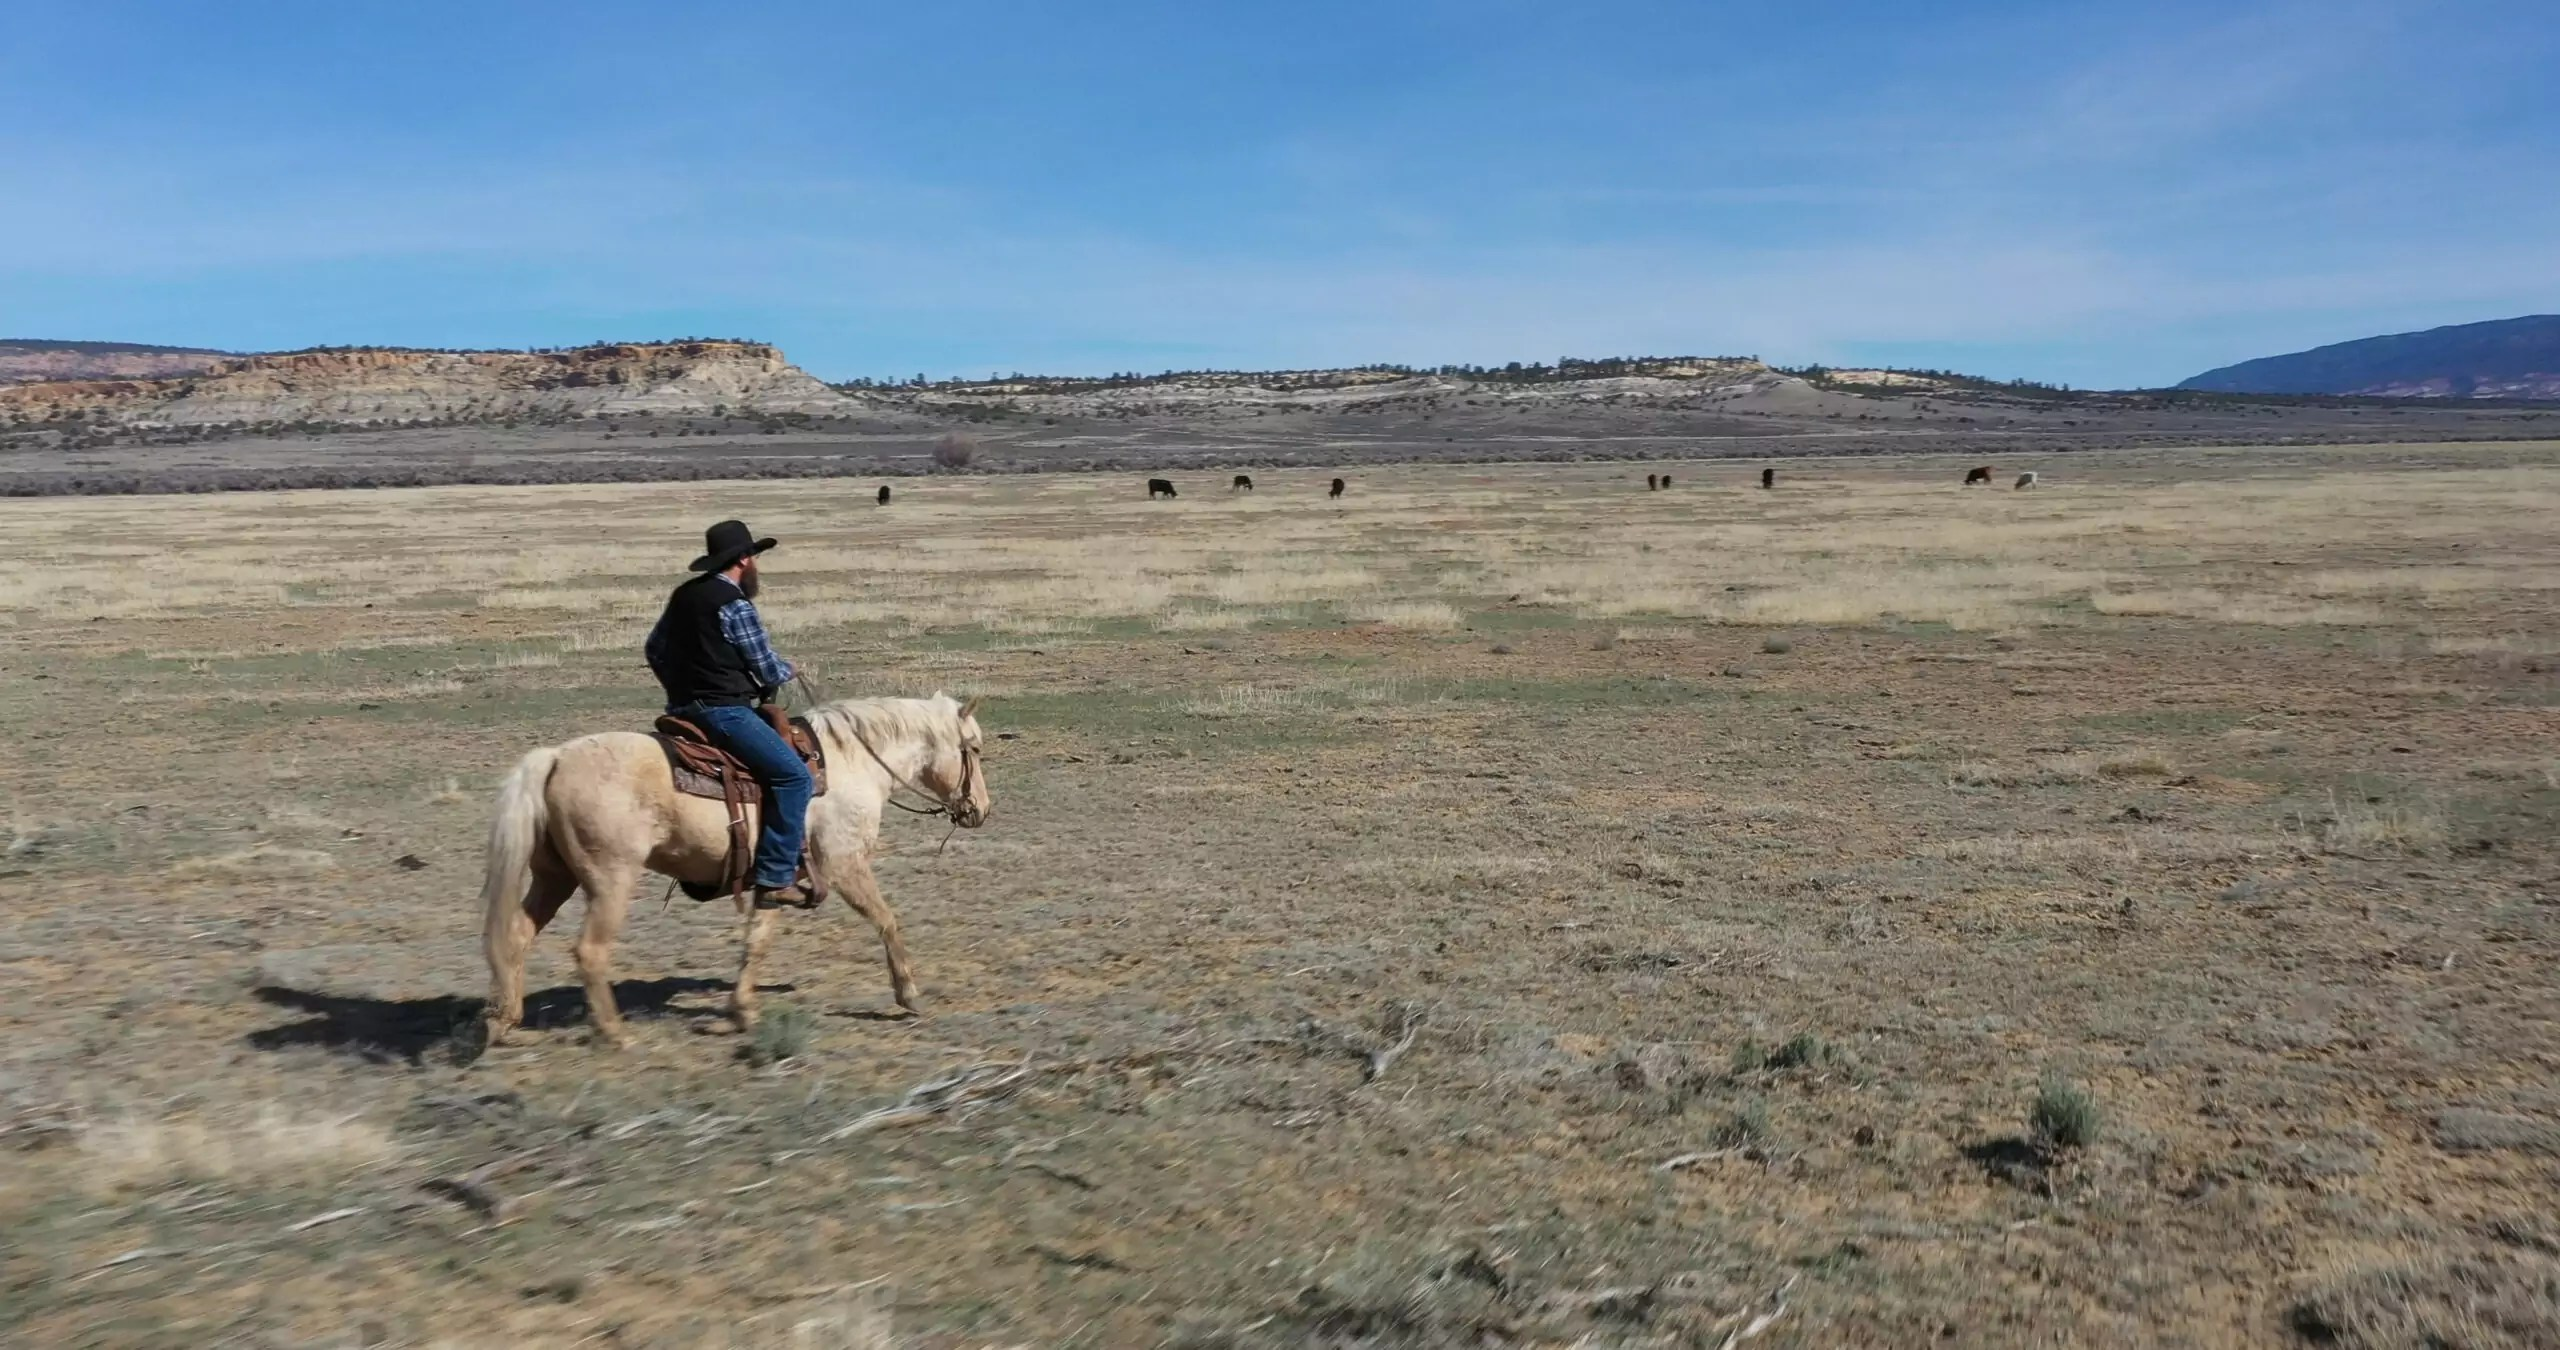 A man sits on a horse in the middle of an open desert field.